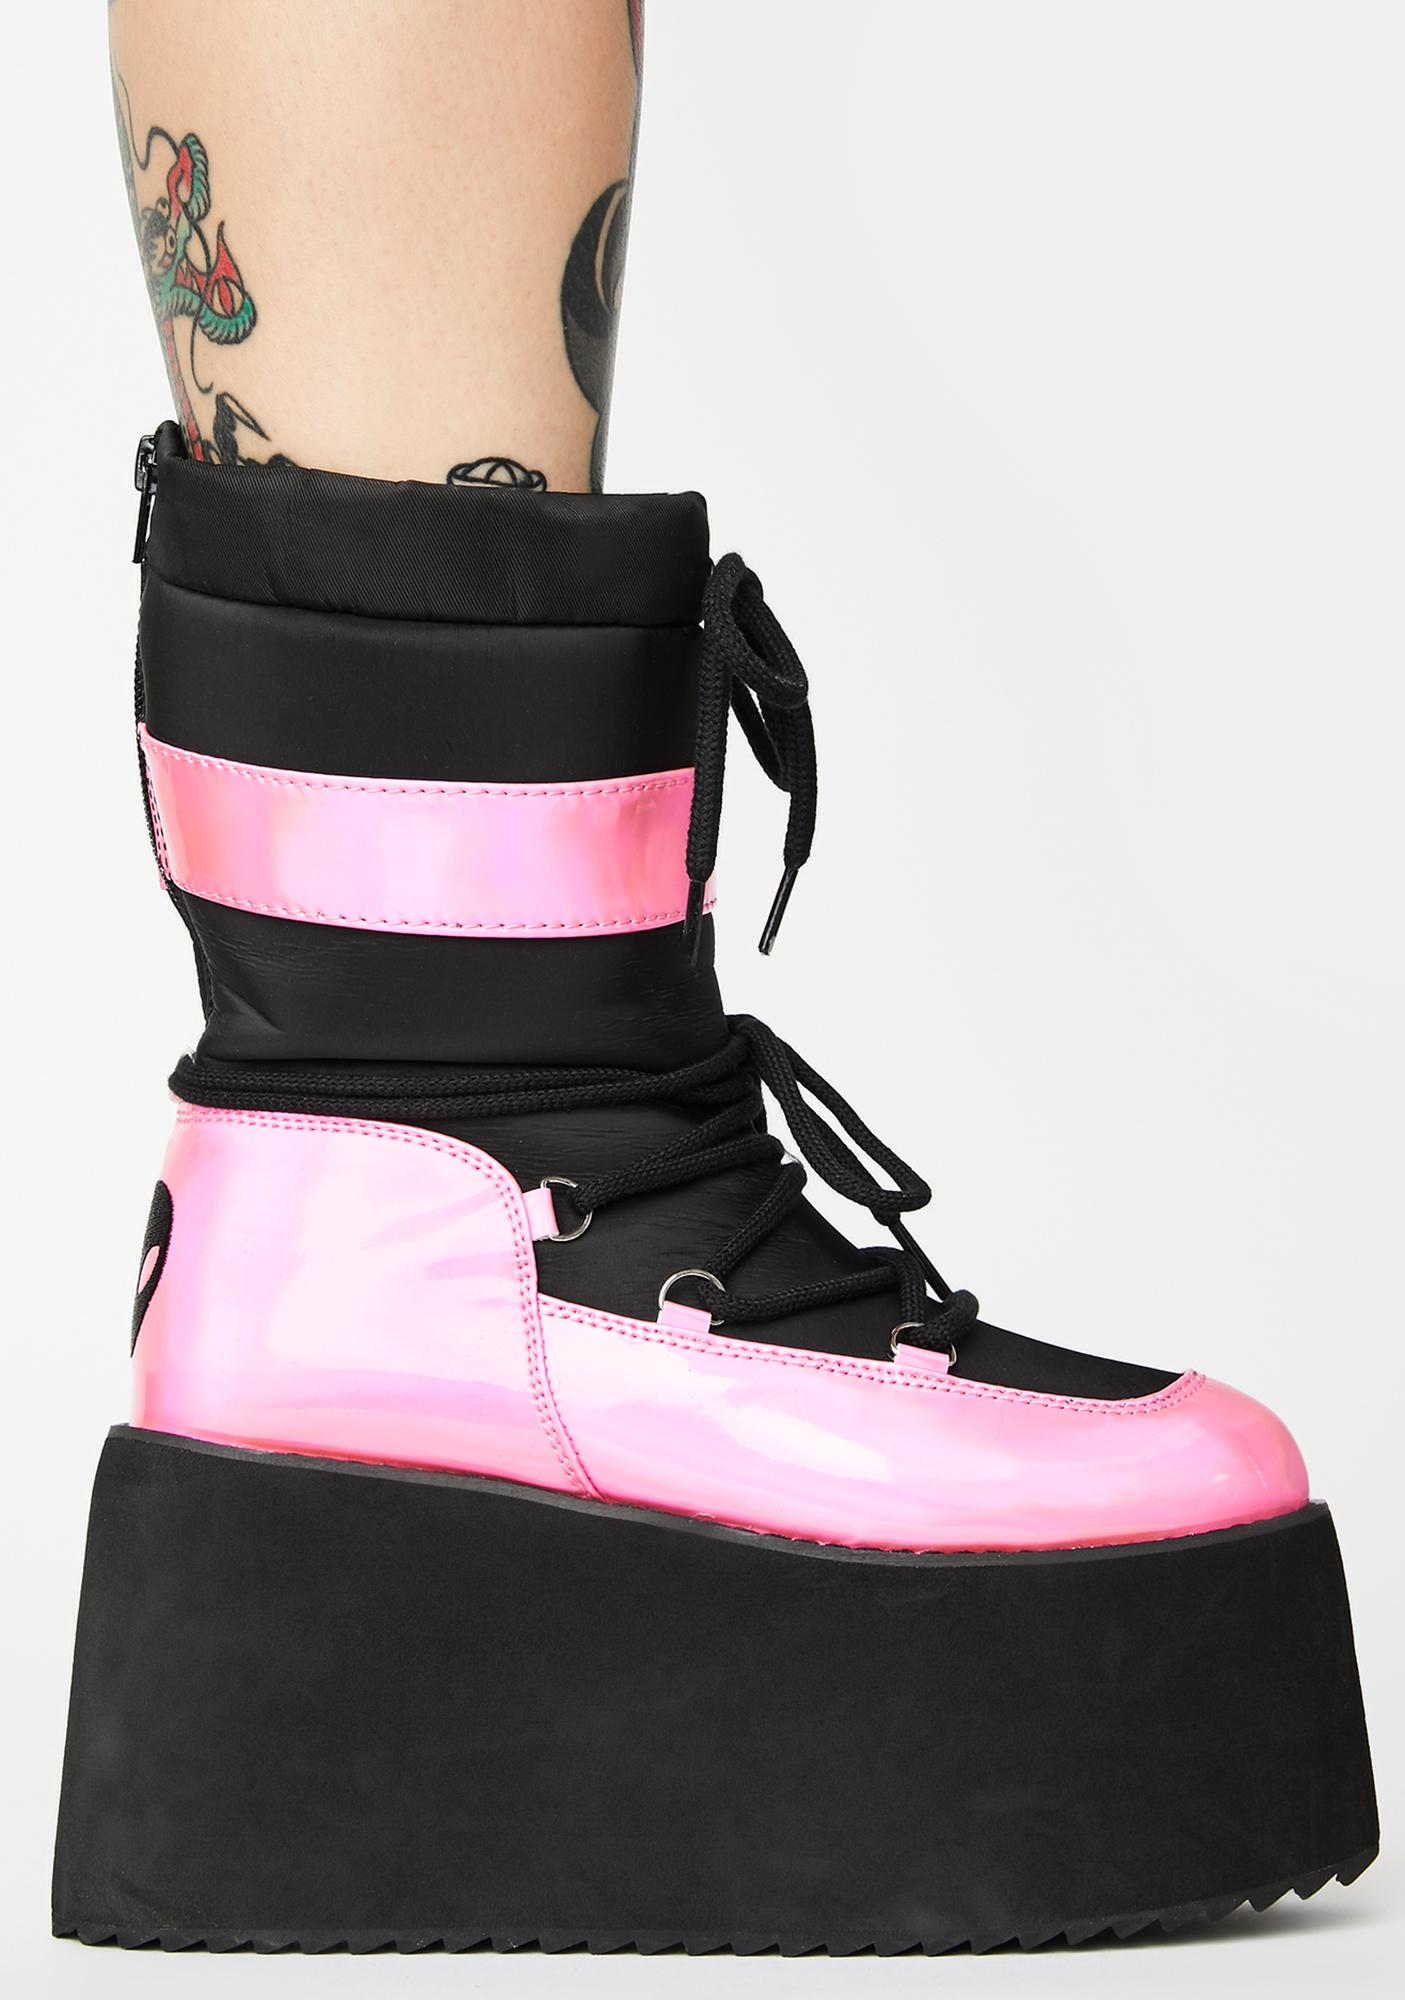 Y.R.U. Pink Holographic Qronic Winter Boots